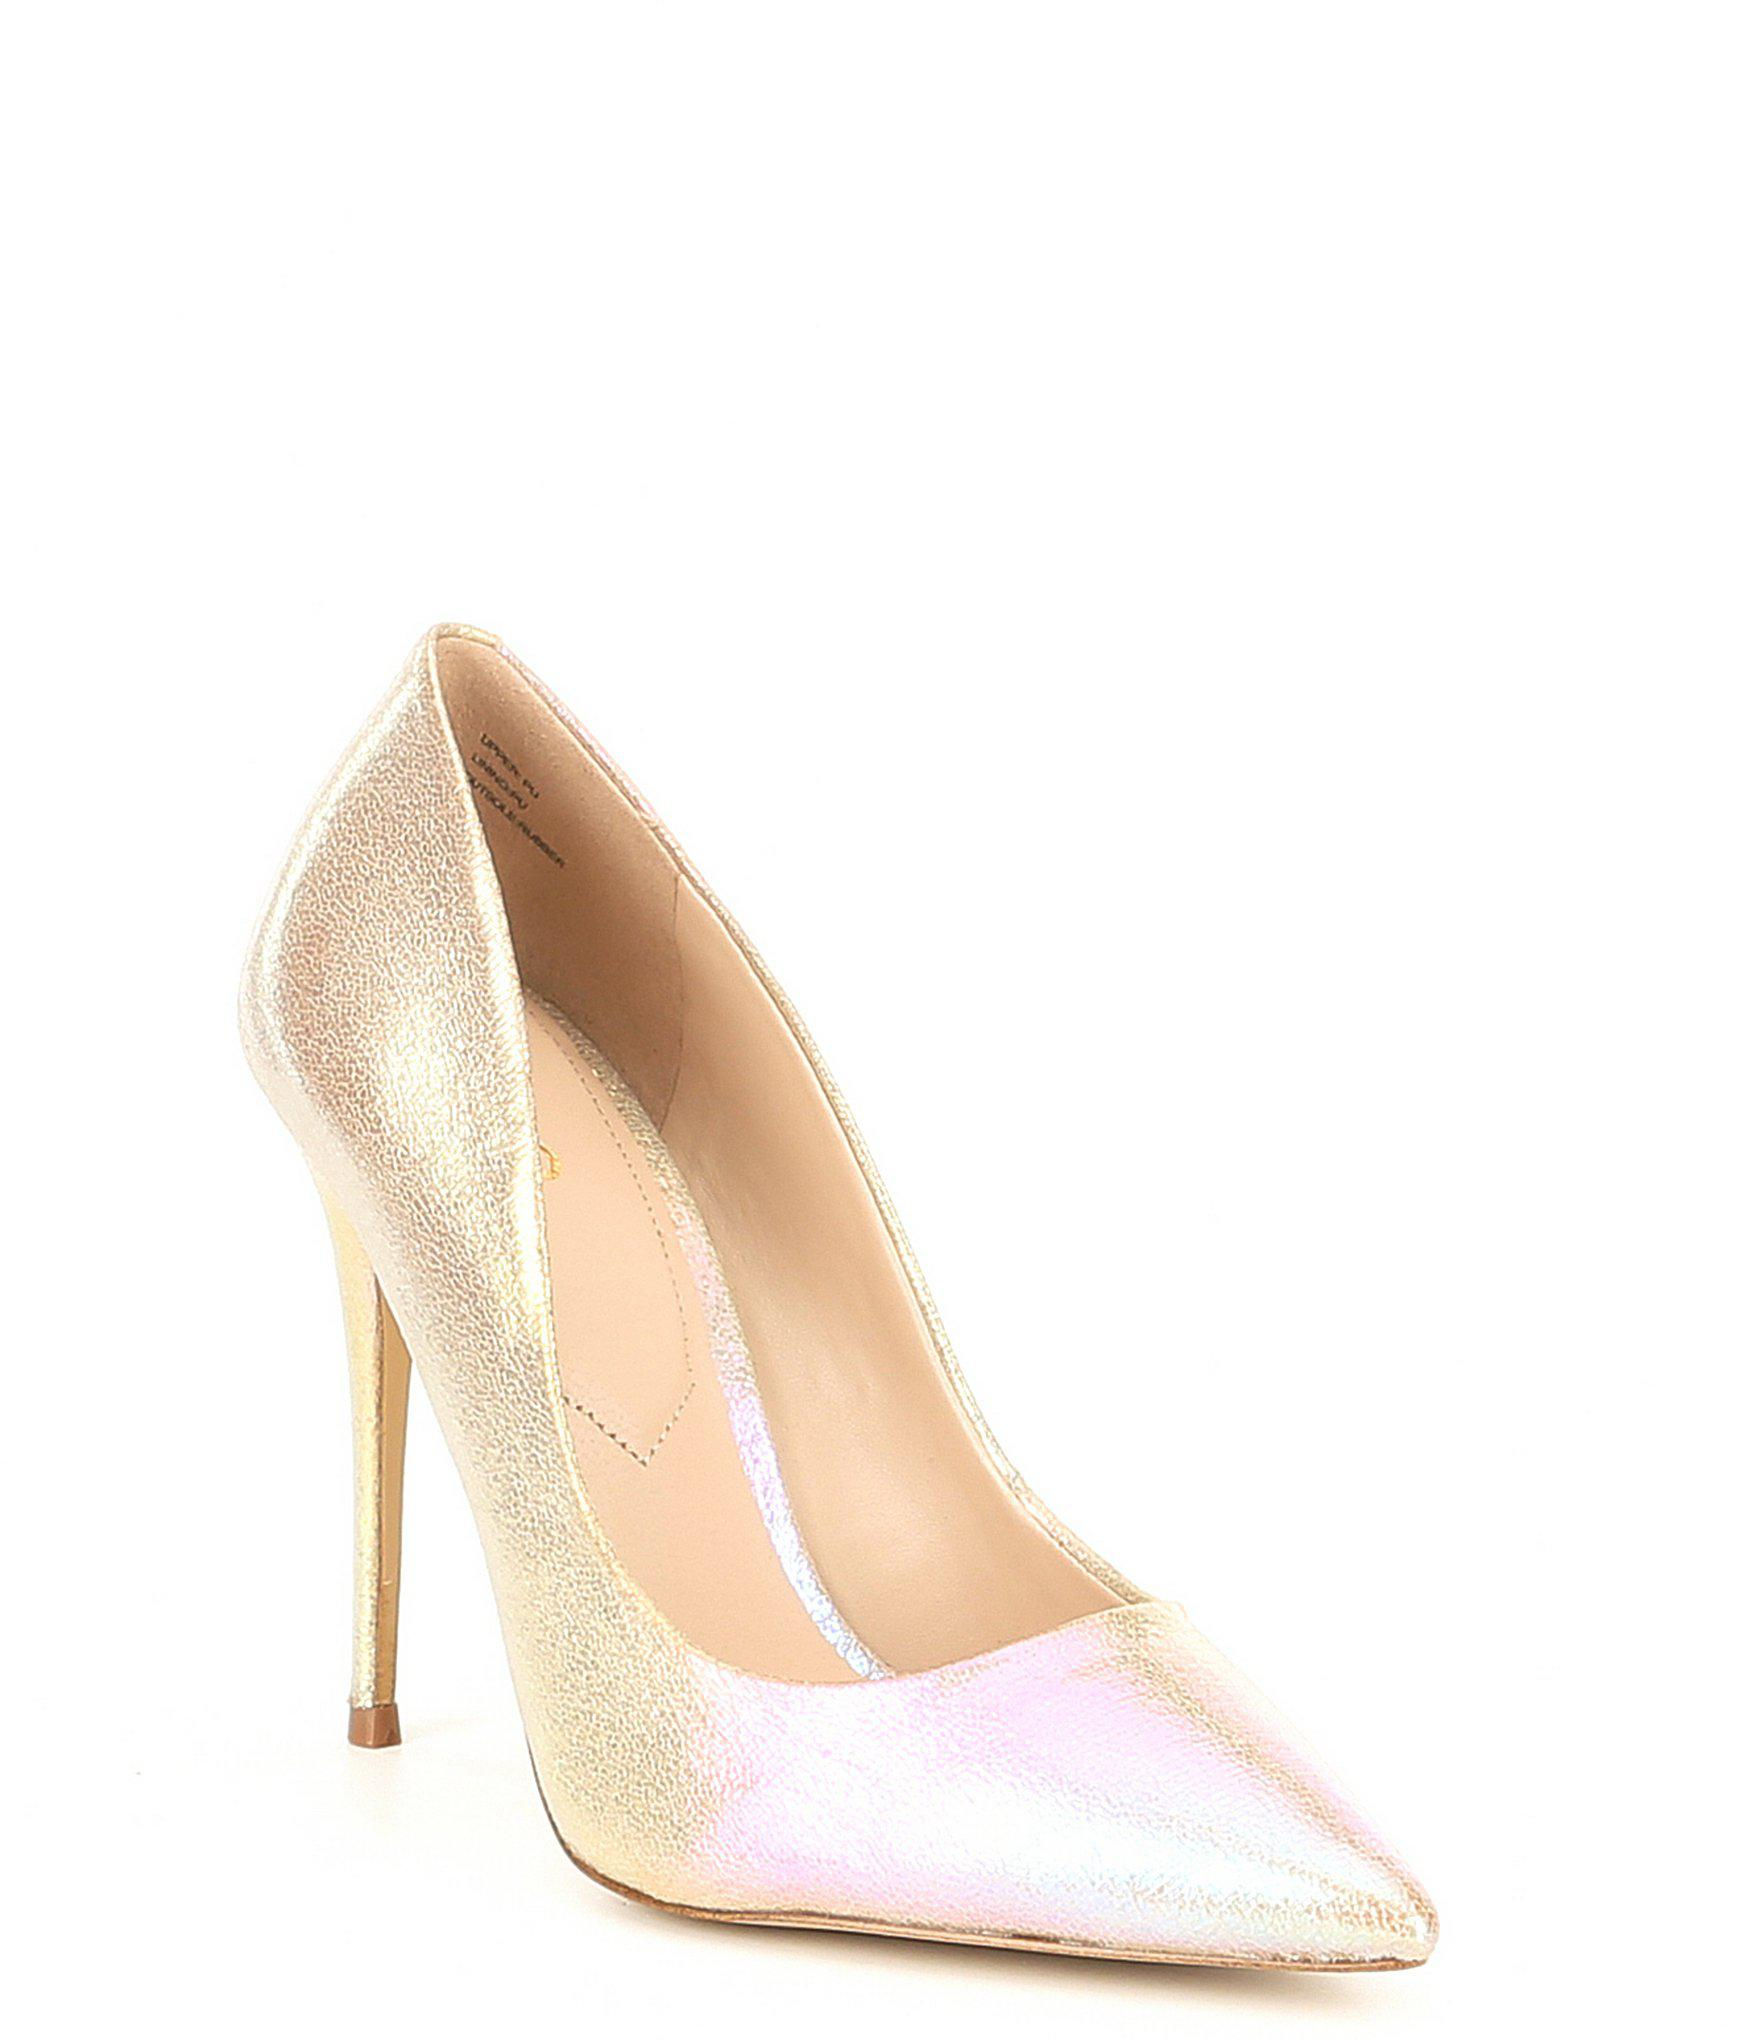 808b6d7d24a8 Lyst - ALDO Stessy Synthetic Pumps in Natural